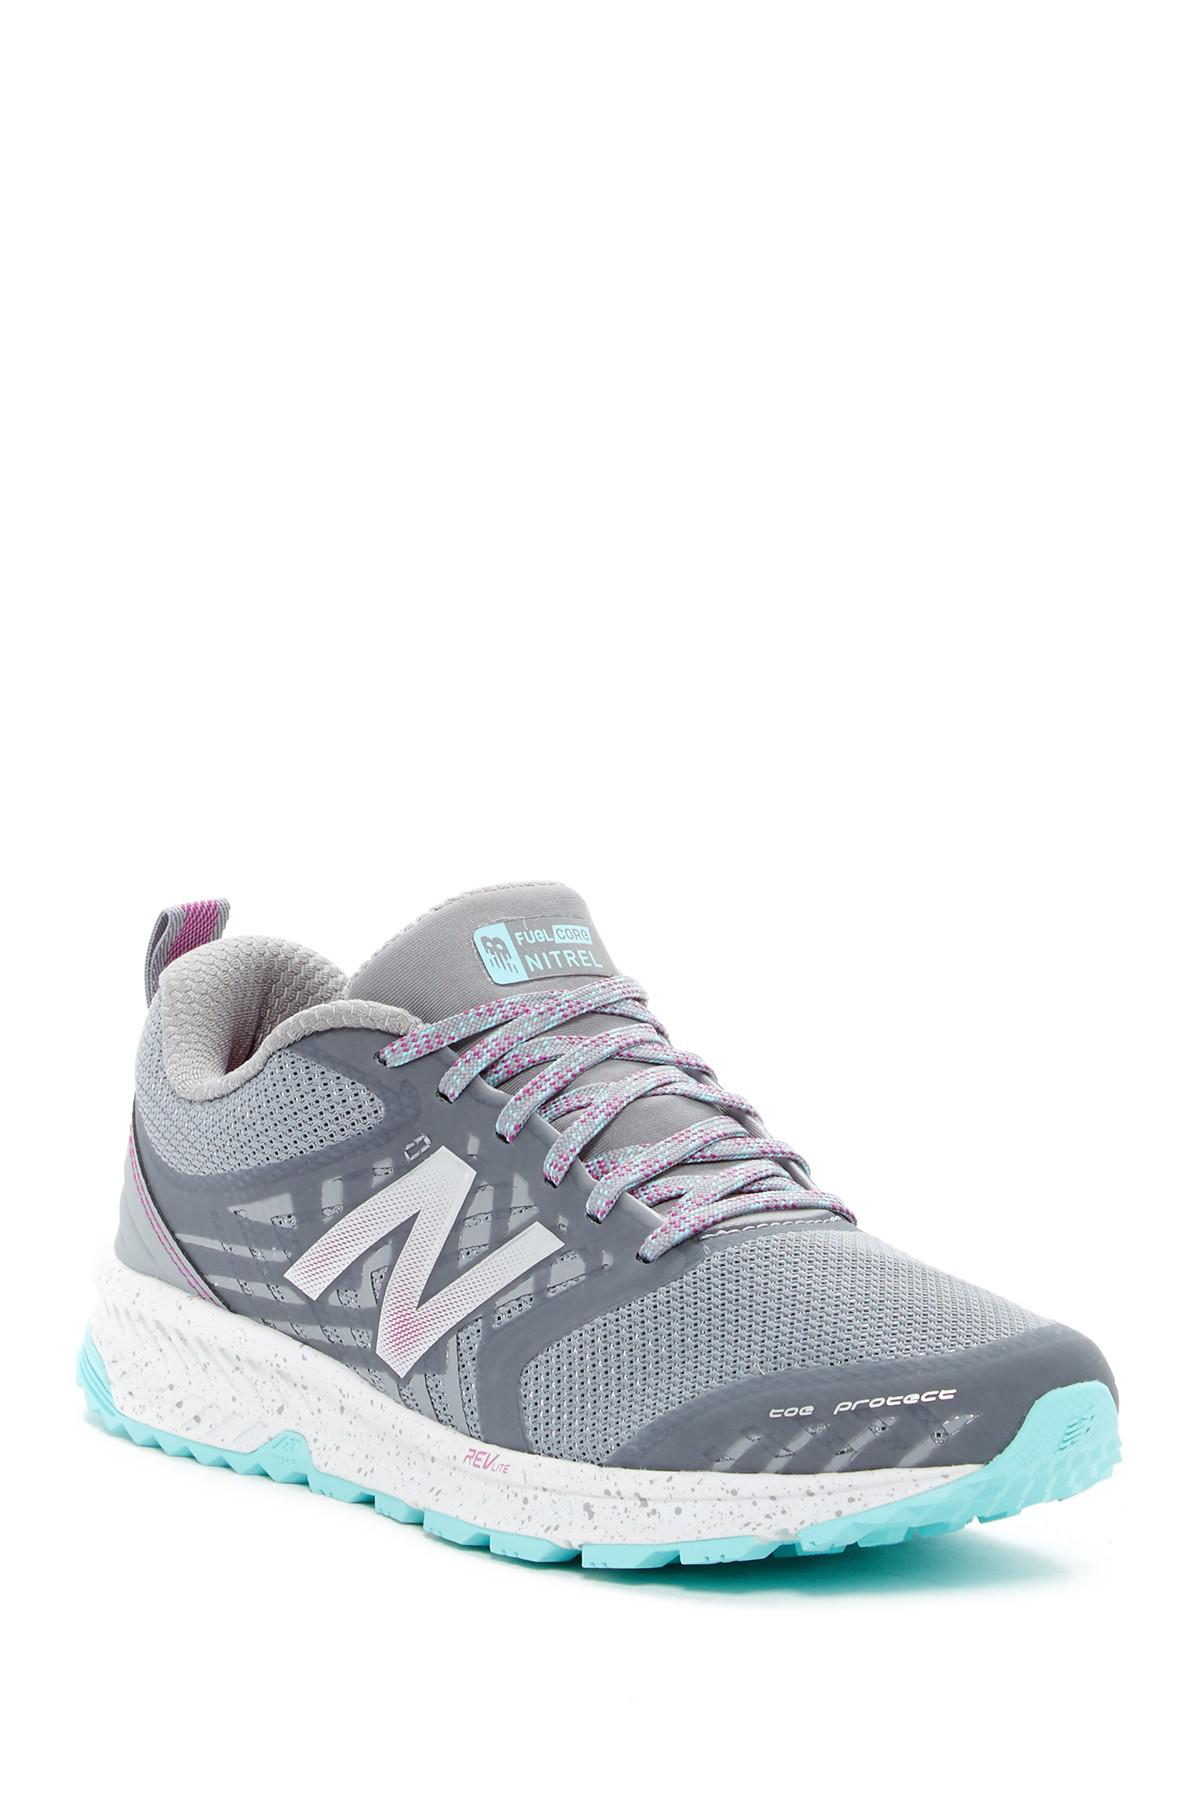 New Balance FuelCore NITREL Trail Running Sneaker - Wide Width Available 0FxRwtU6q